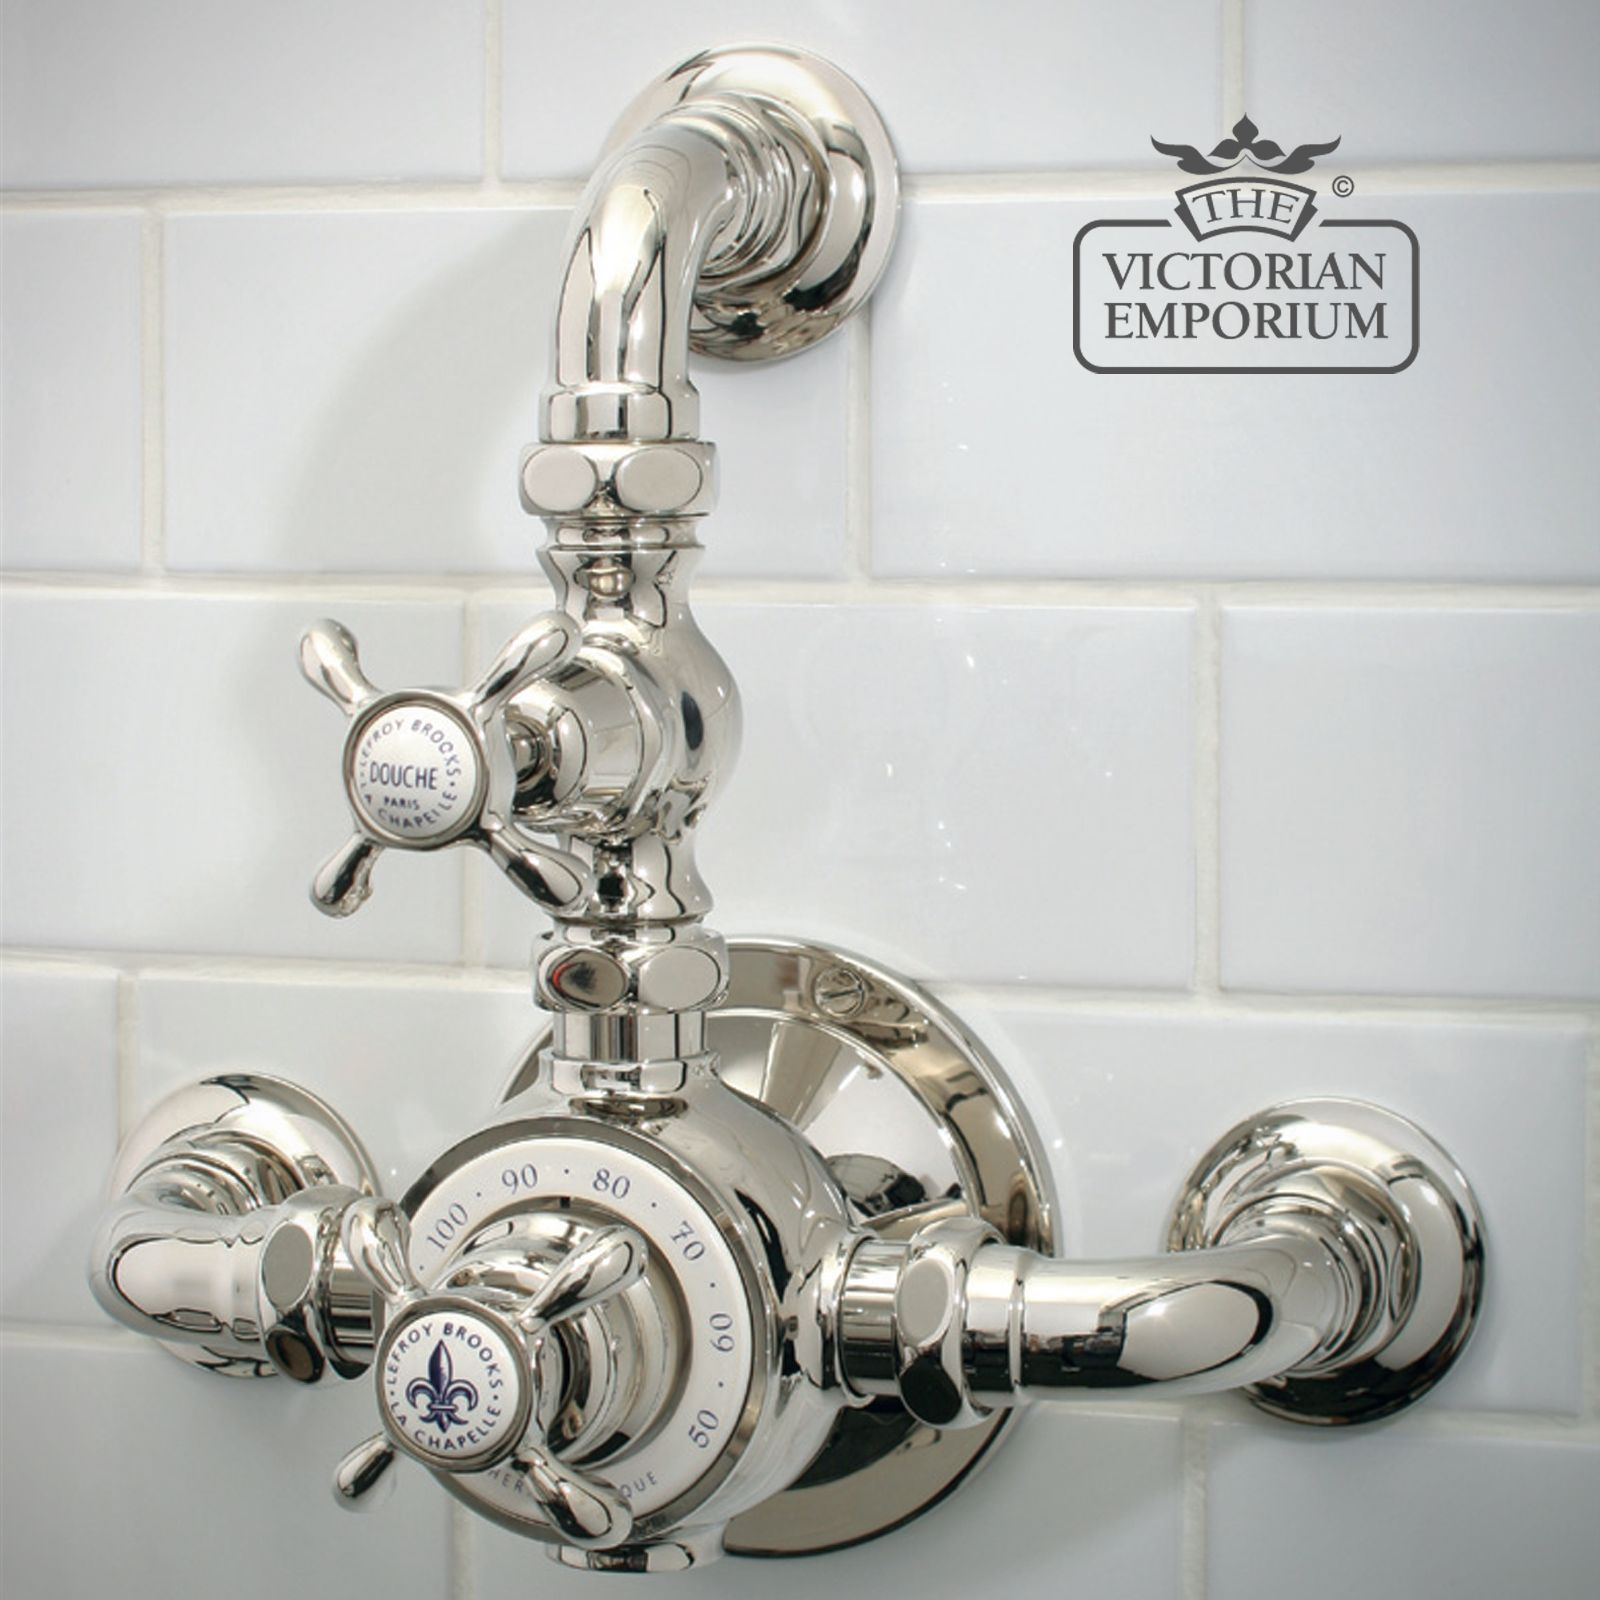 Exposed Dual Control Thermostatic Mixing Valve Bath